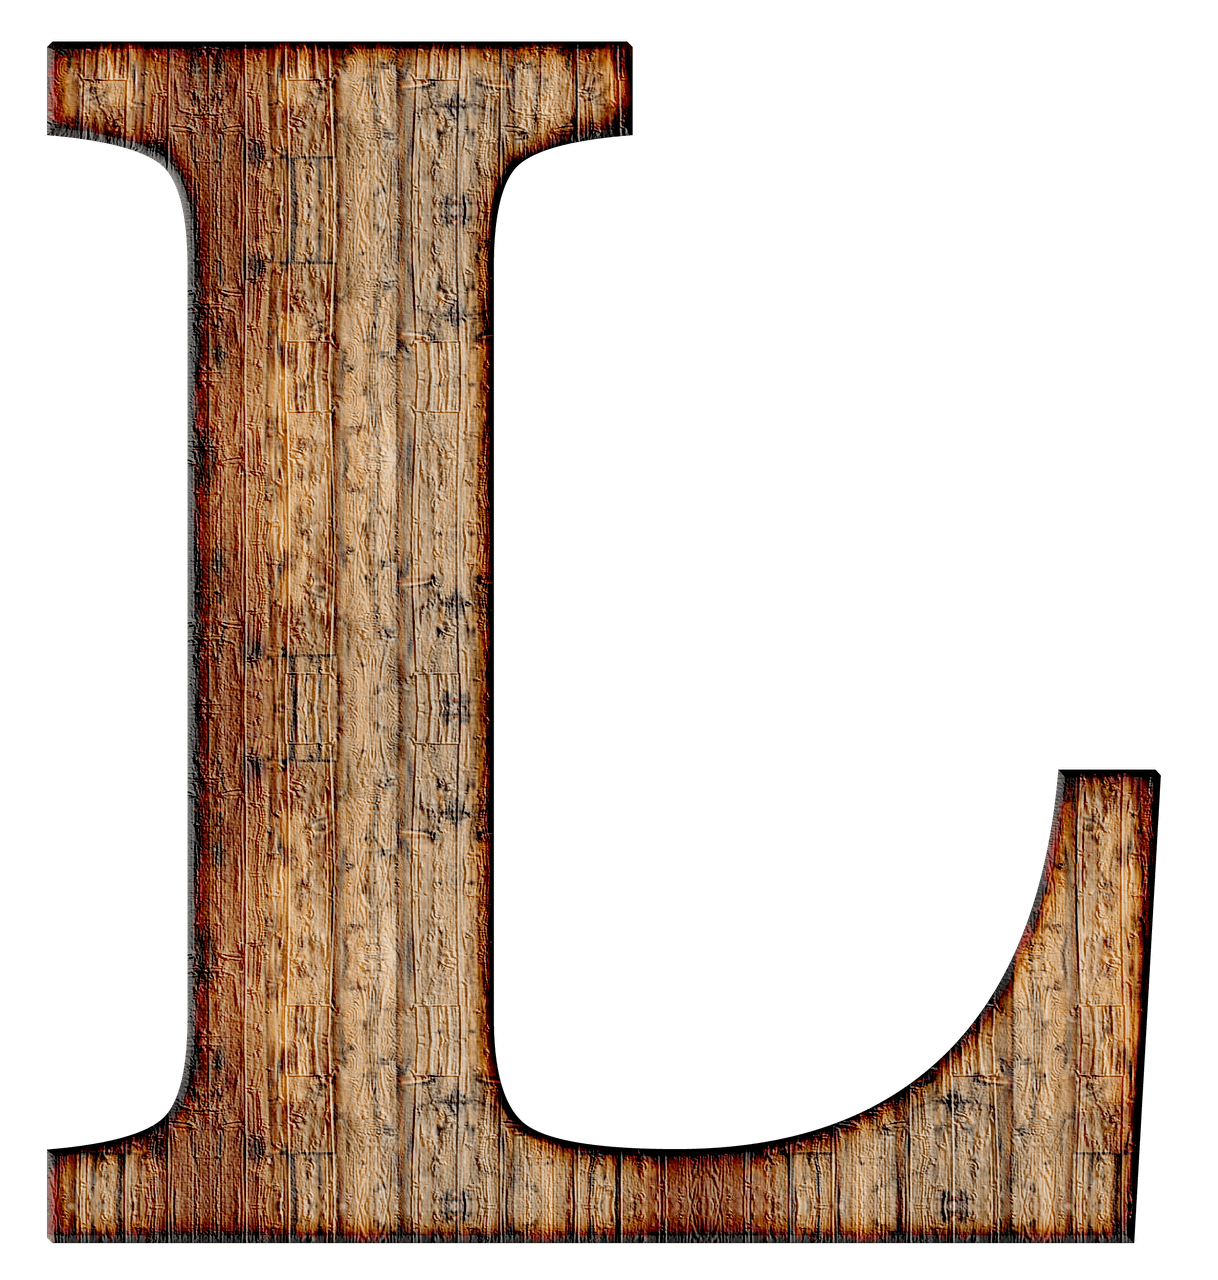 Alphabet wood png. Wooden capital letter l